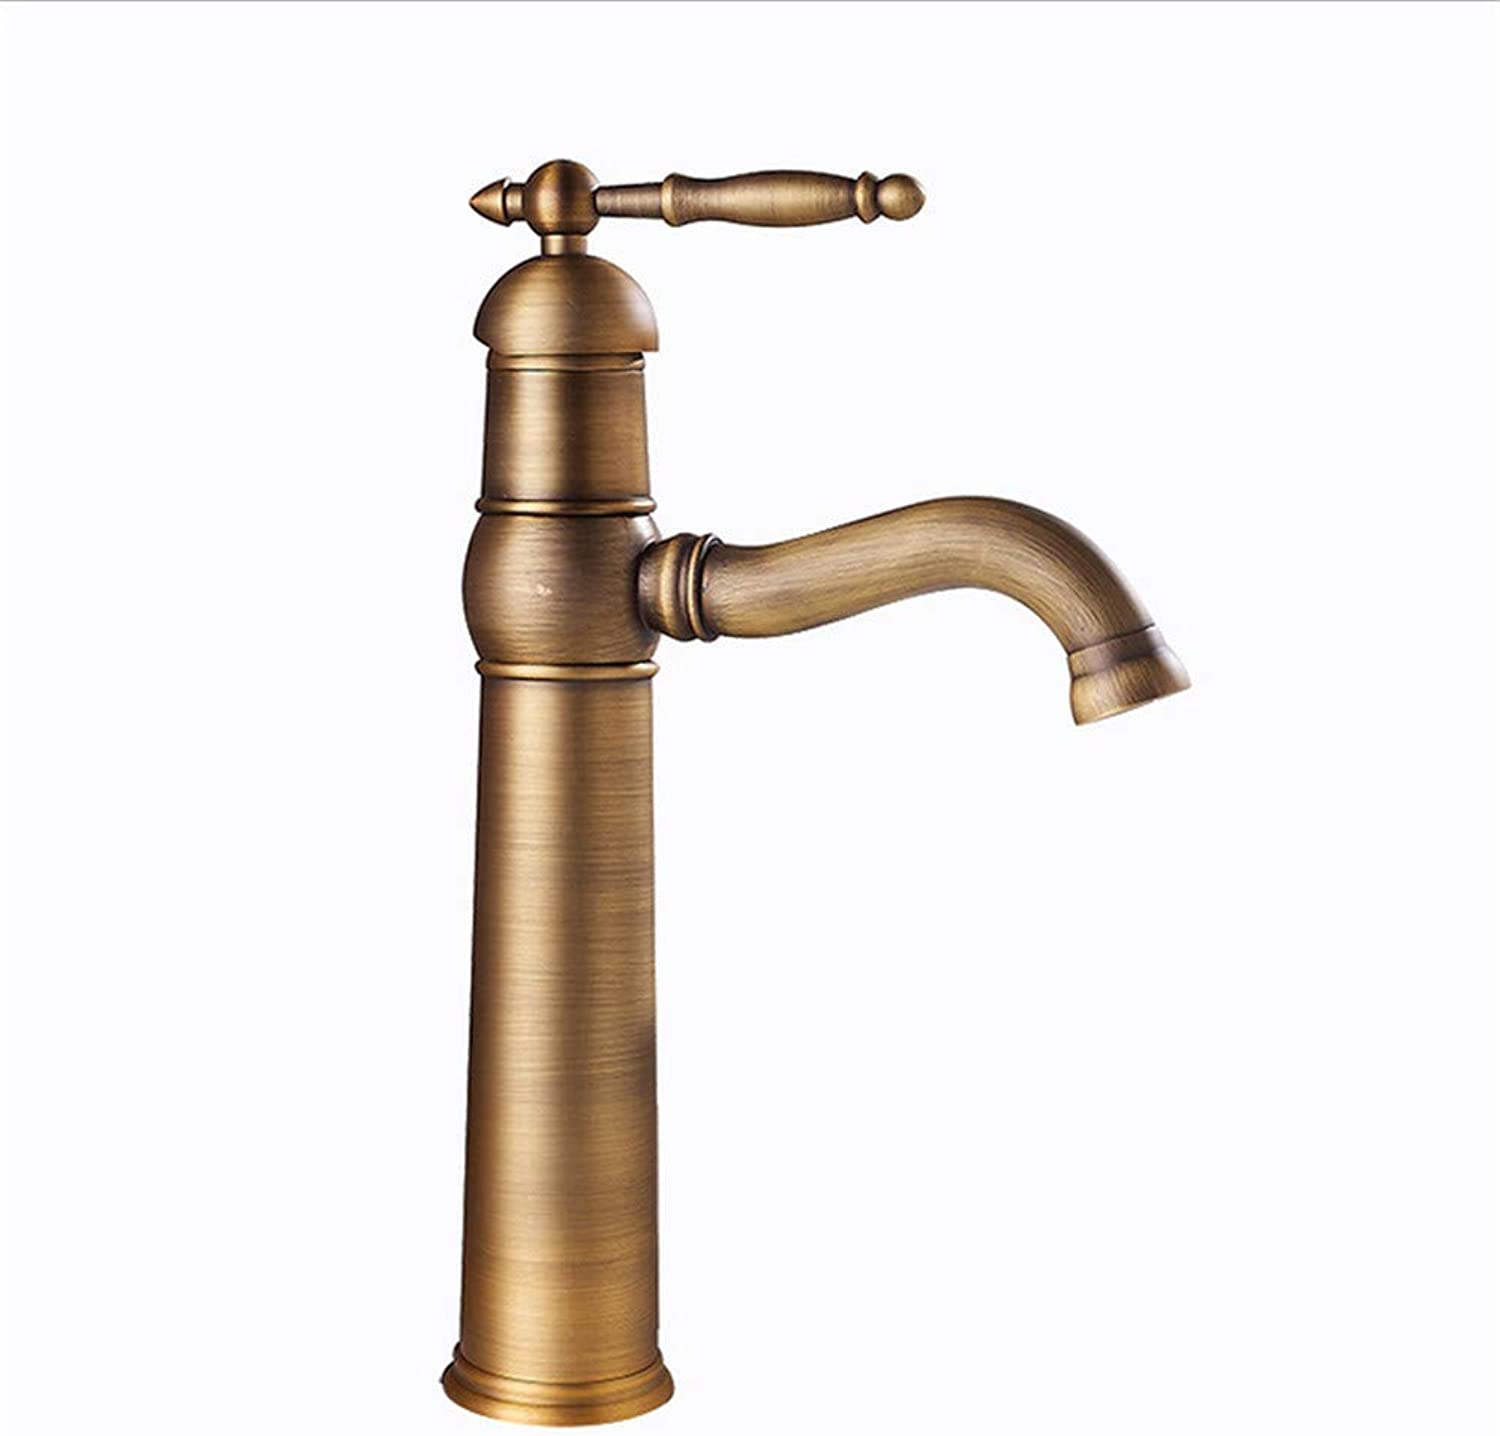 Oudan Bathroom Sink Taps ?Antique Kitchen Faucet Copper Brushed European Kitchen Hot And Cold Water Mixer Hotel Bathroom Basin Faucet (color   -, Size   -)